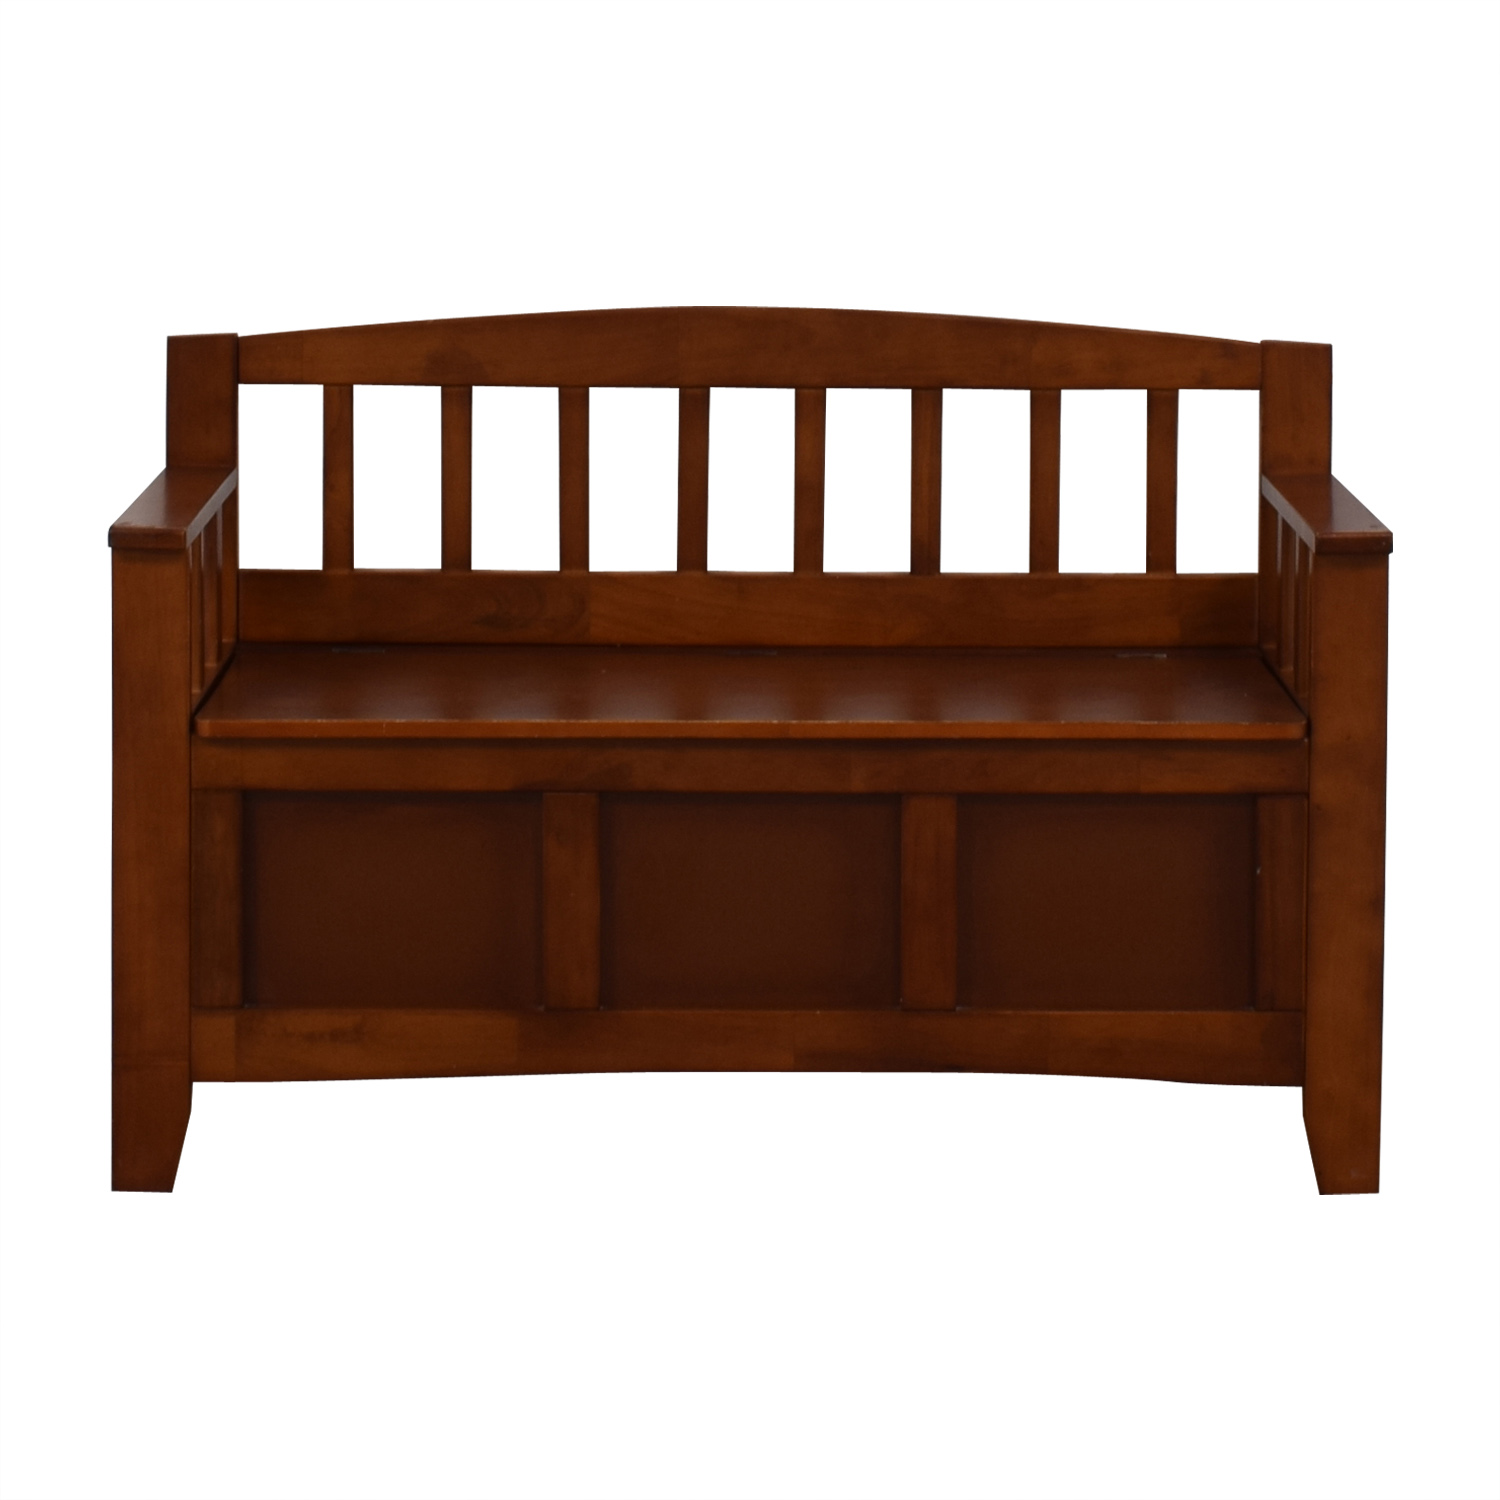 Wood Storage Bench for sale